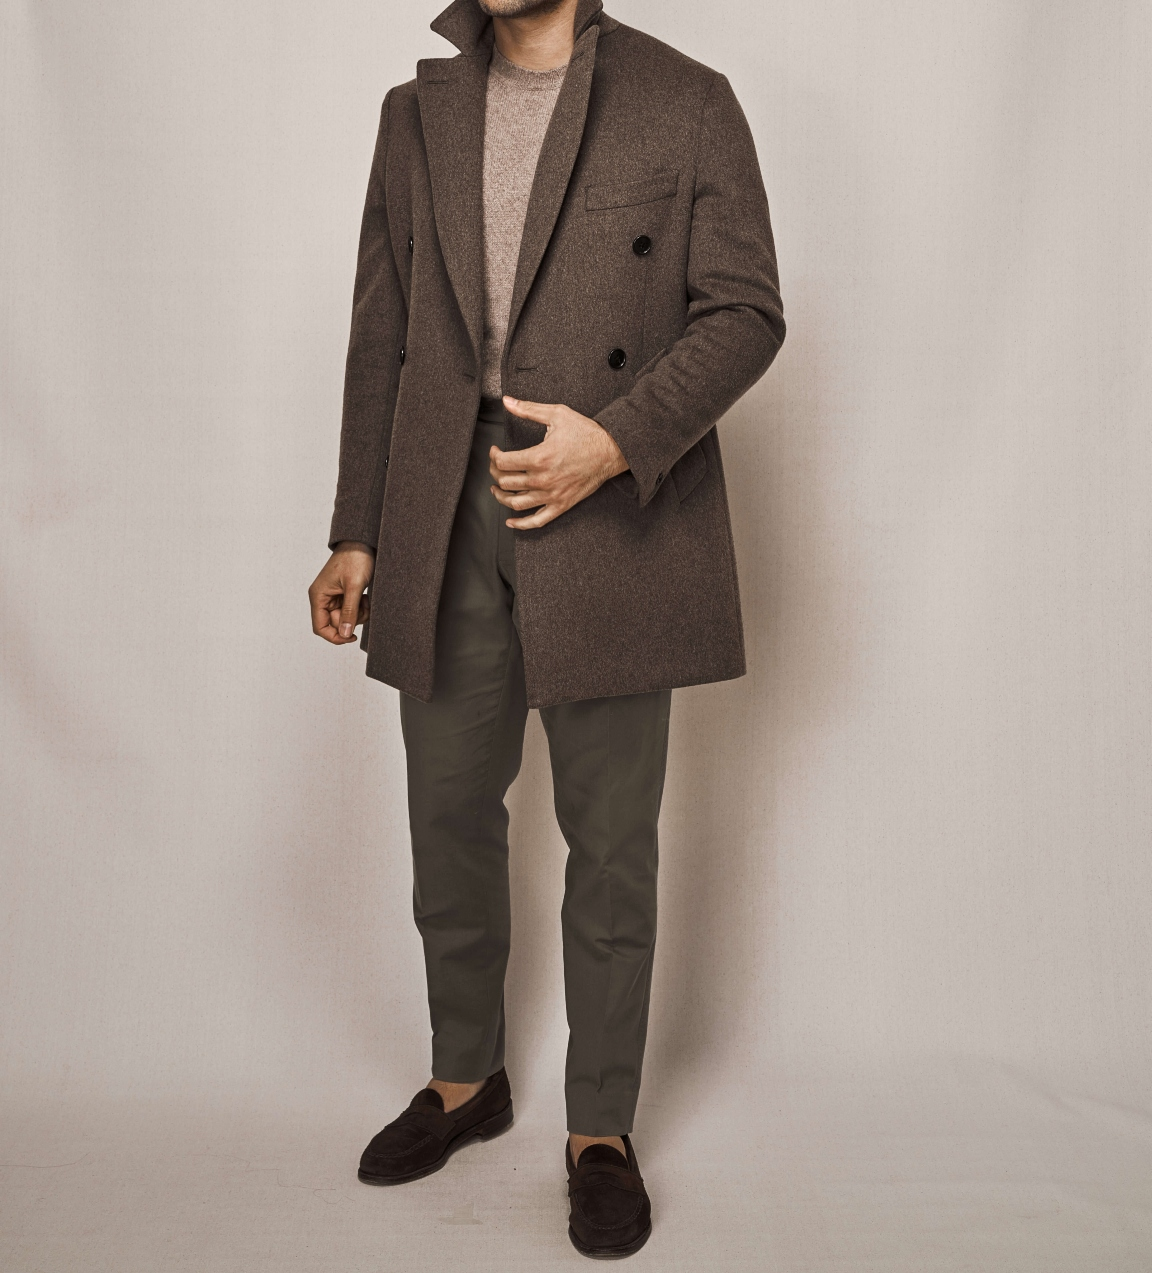 Double Breasted Overcoat | Olive Cotton Stretch Trouser